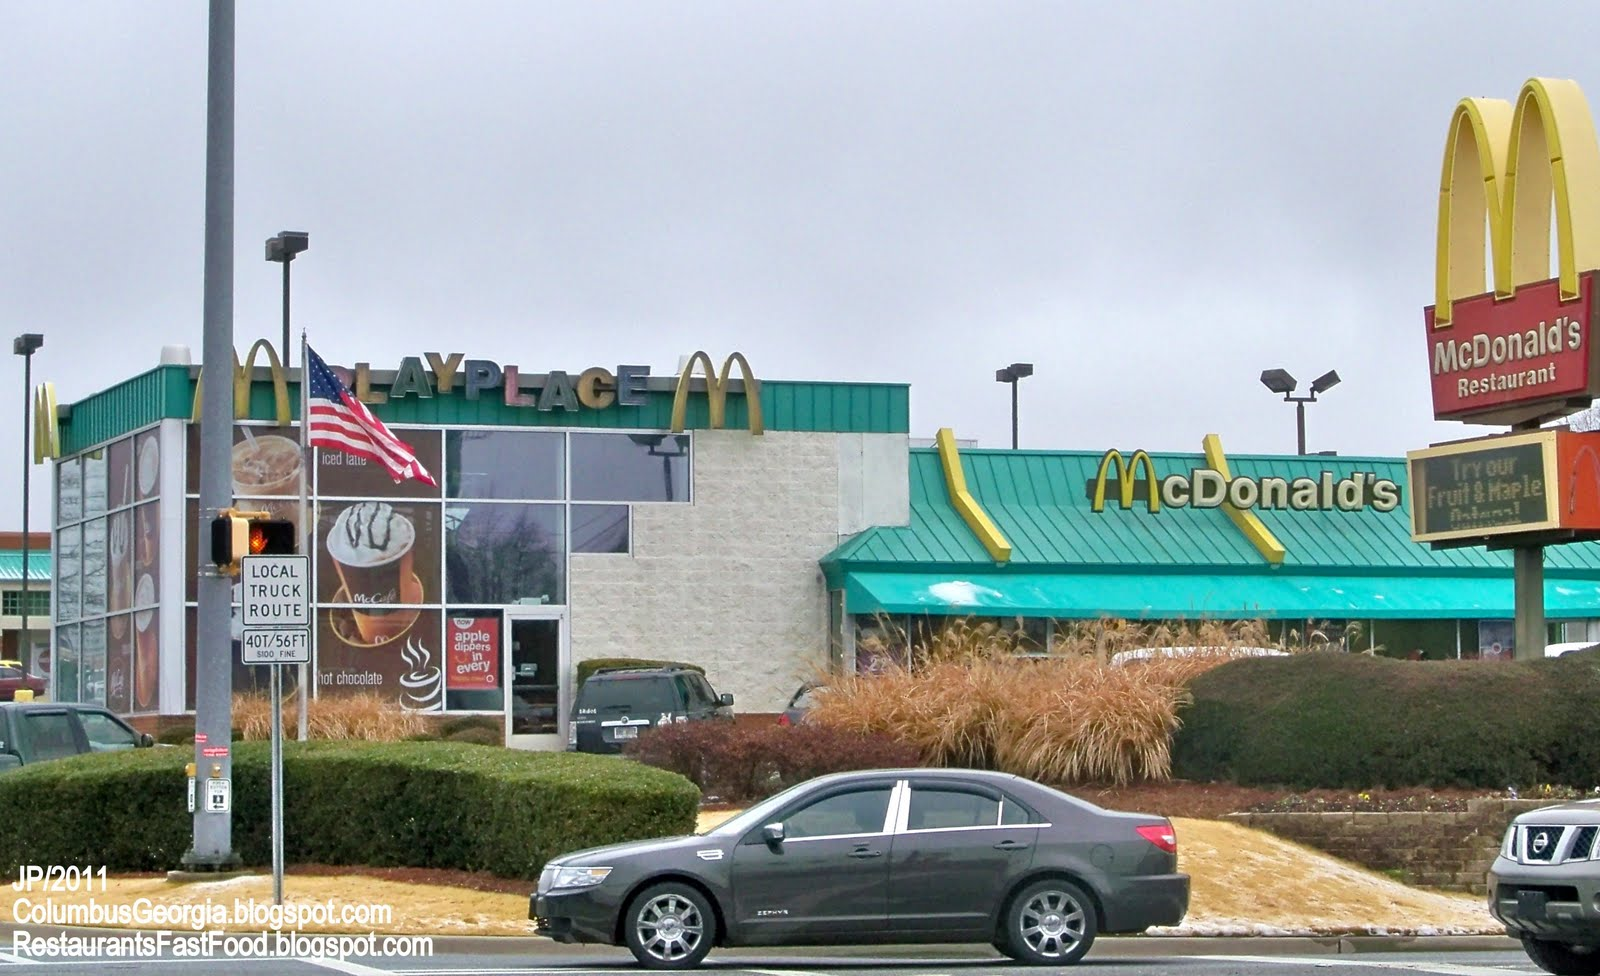 Mcdonalds Fast Food Restaurant